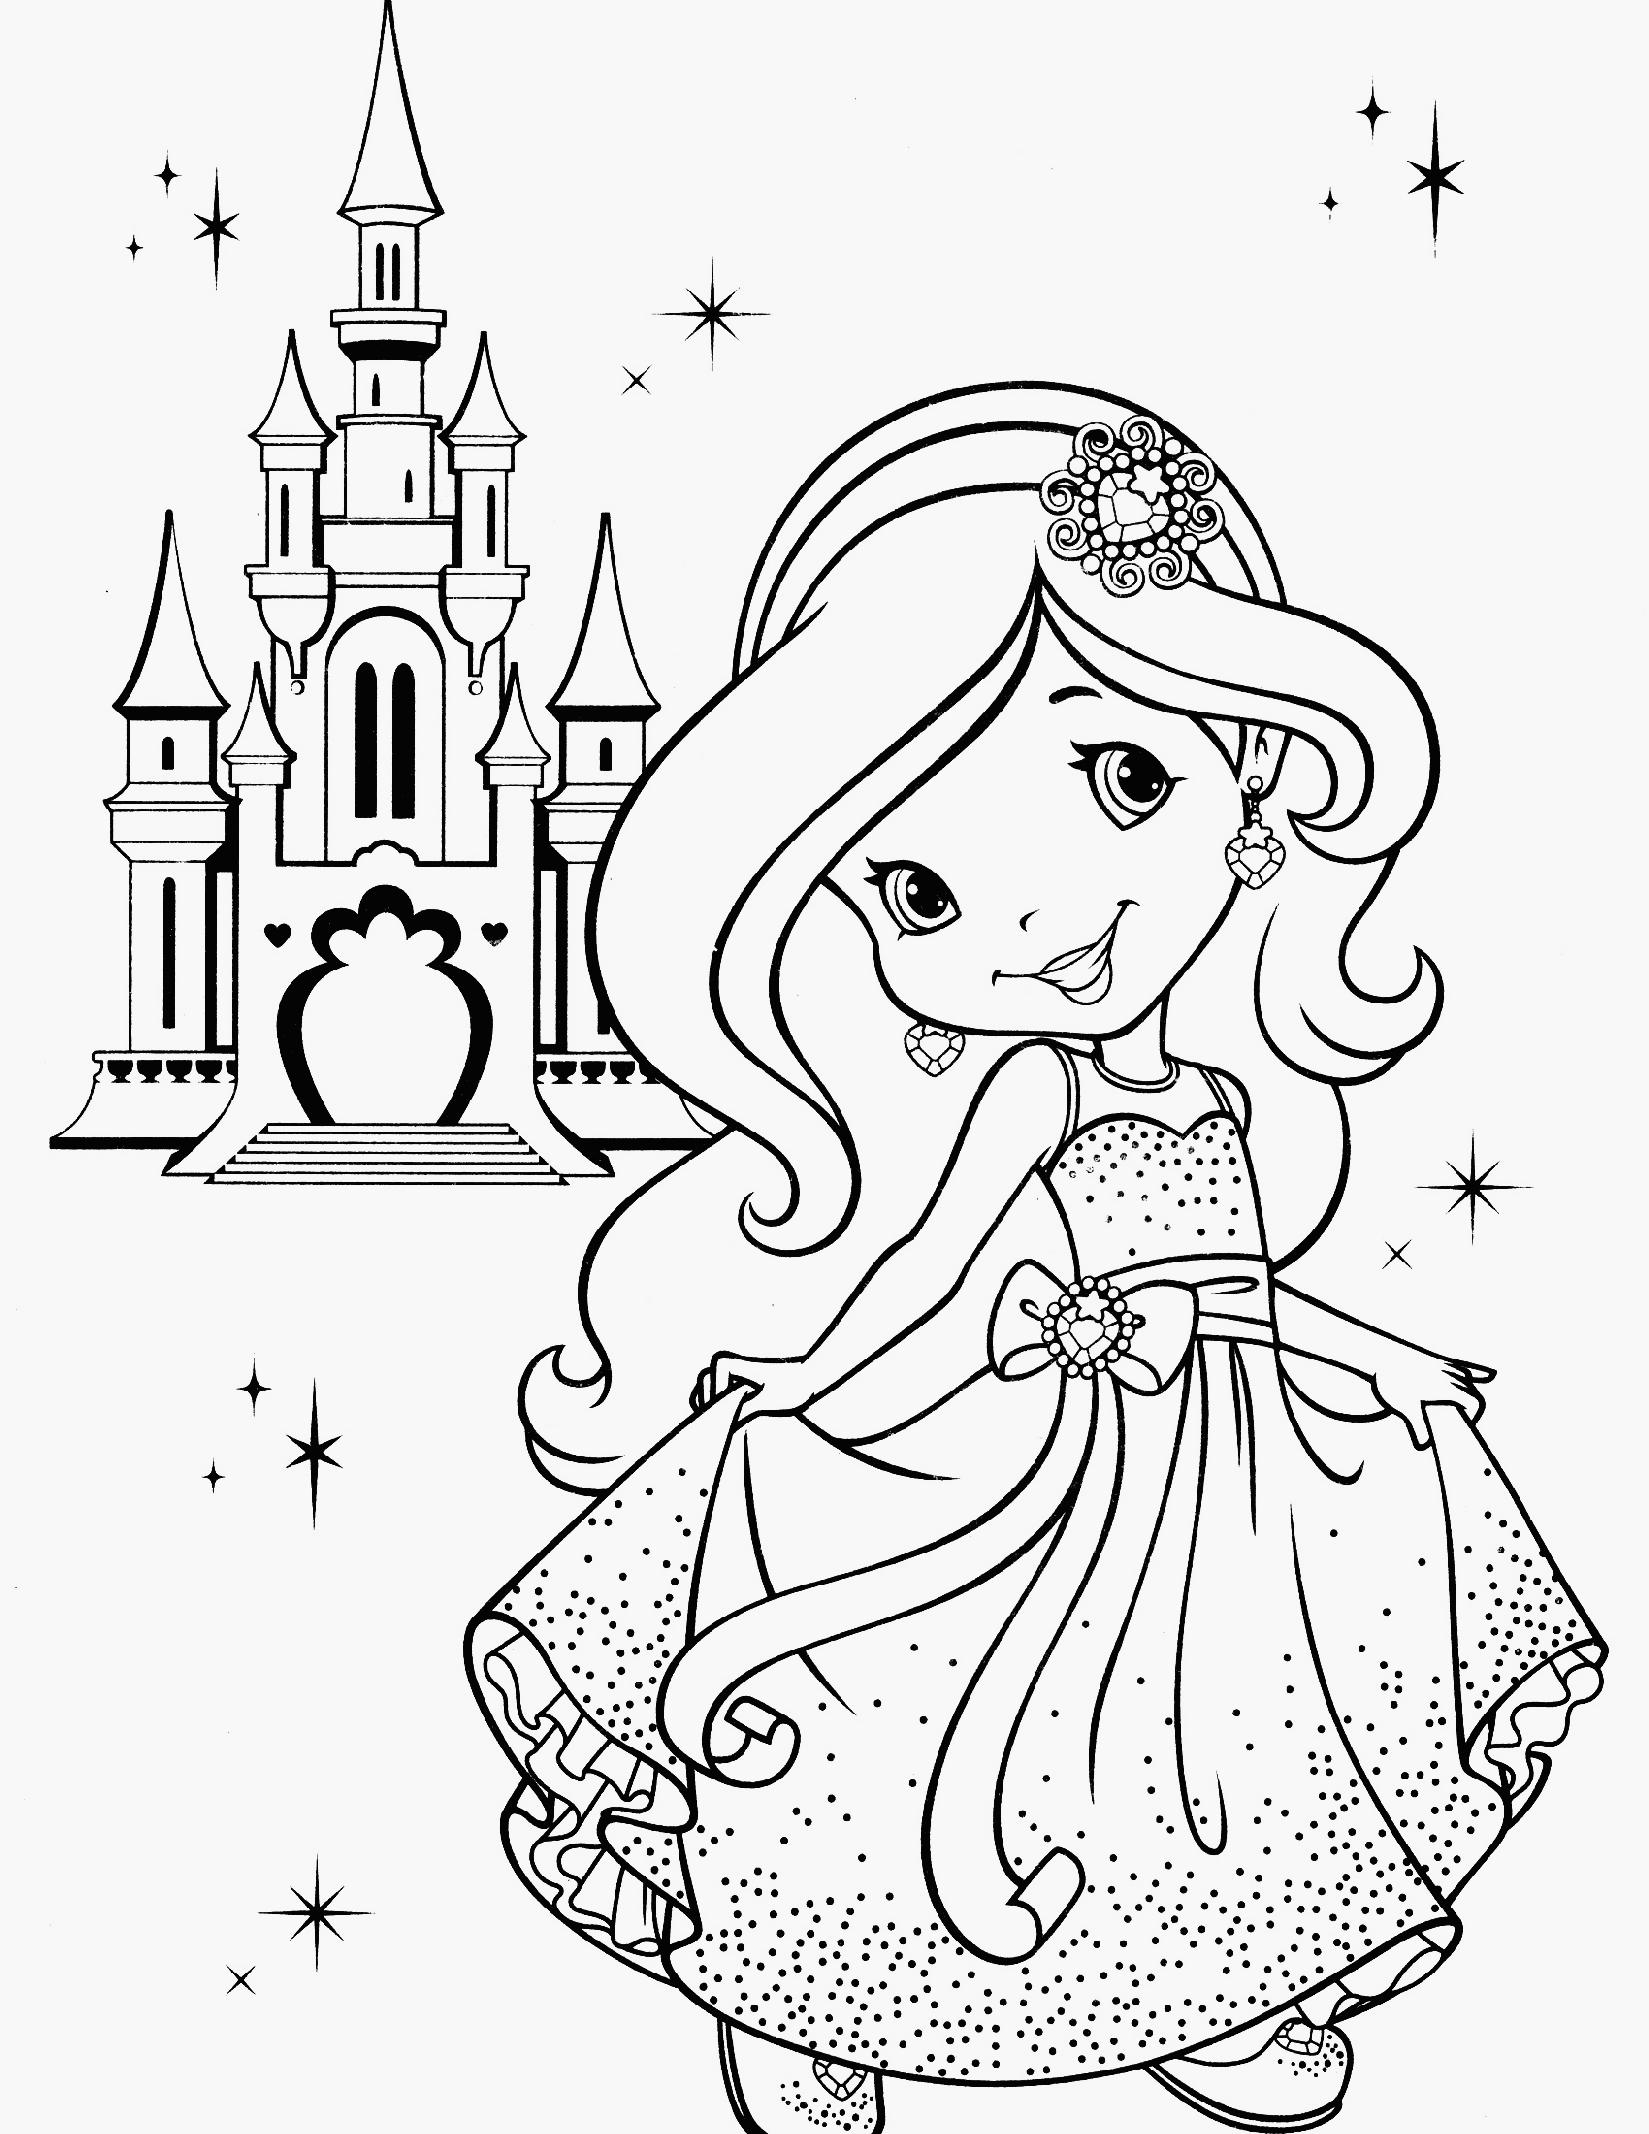 groundhog day coloring pages free printable - strawberry shortcake and friends coloring pages free coloring